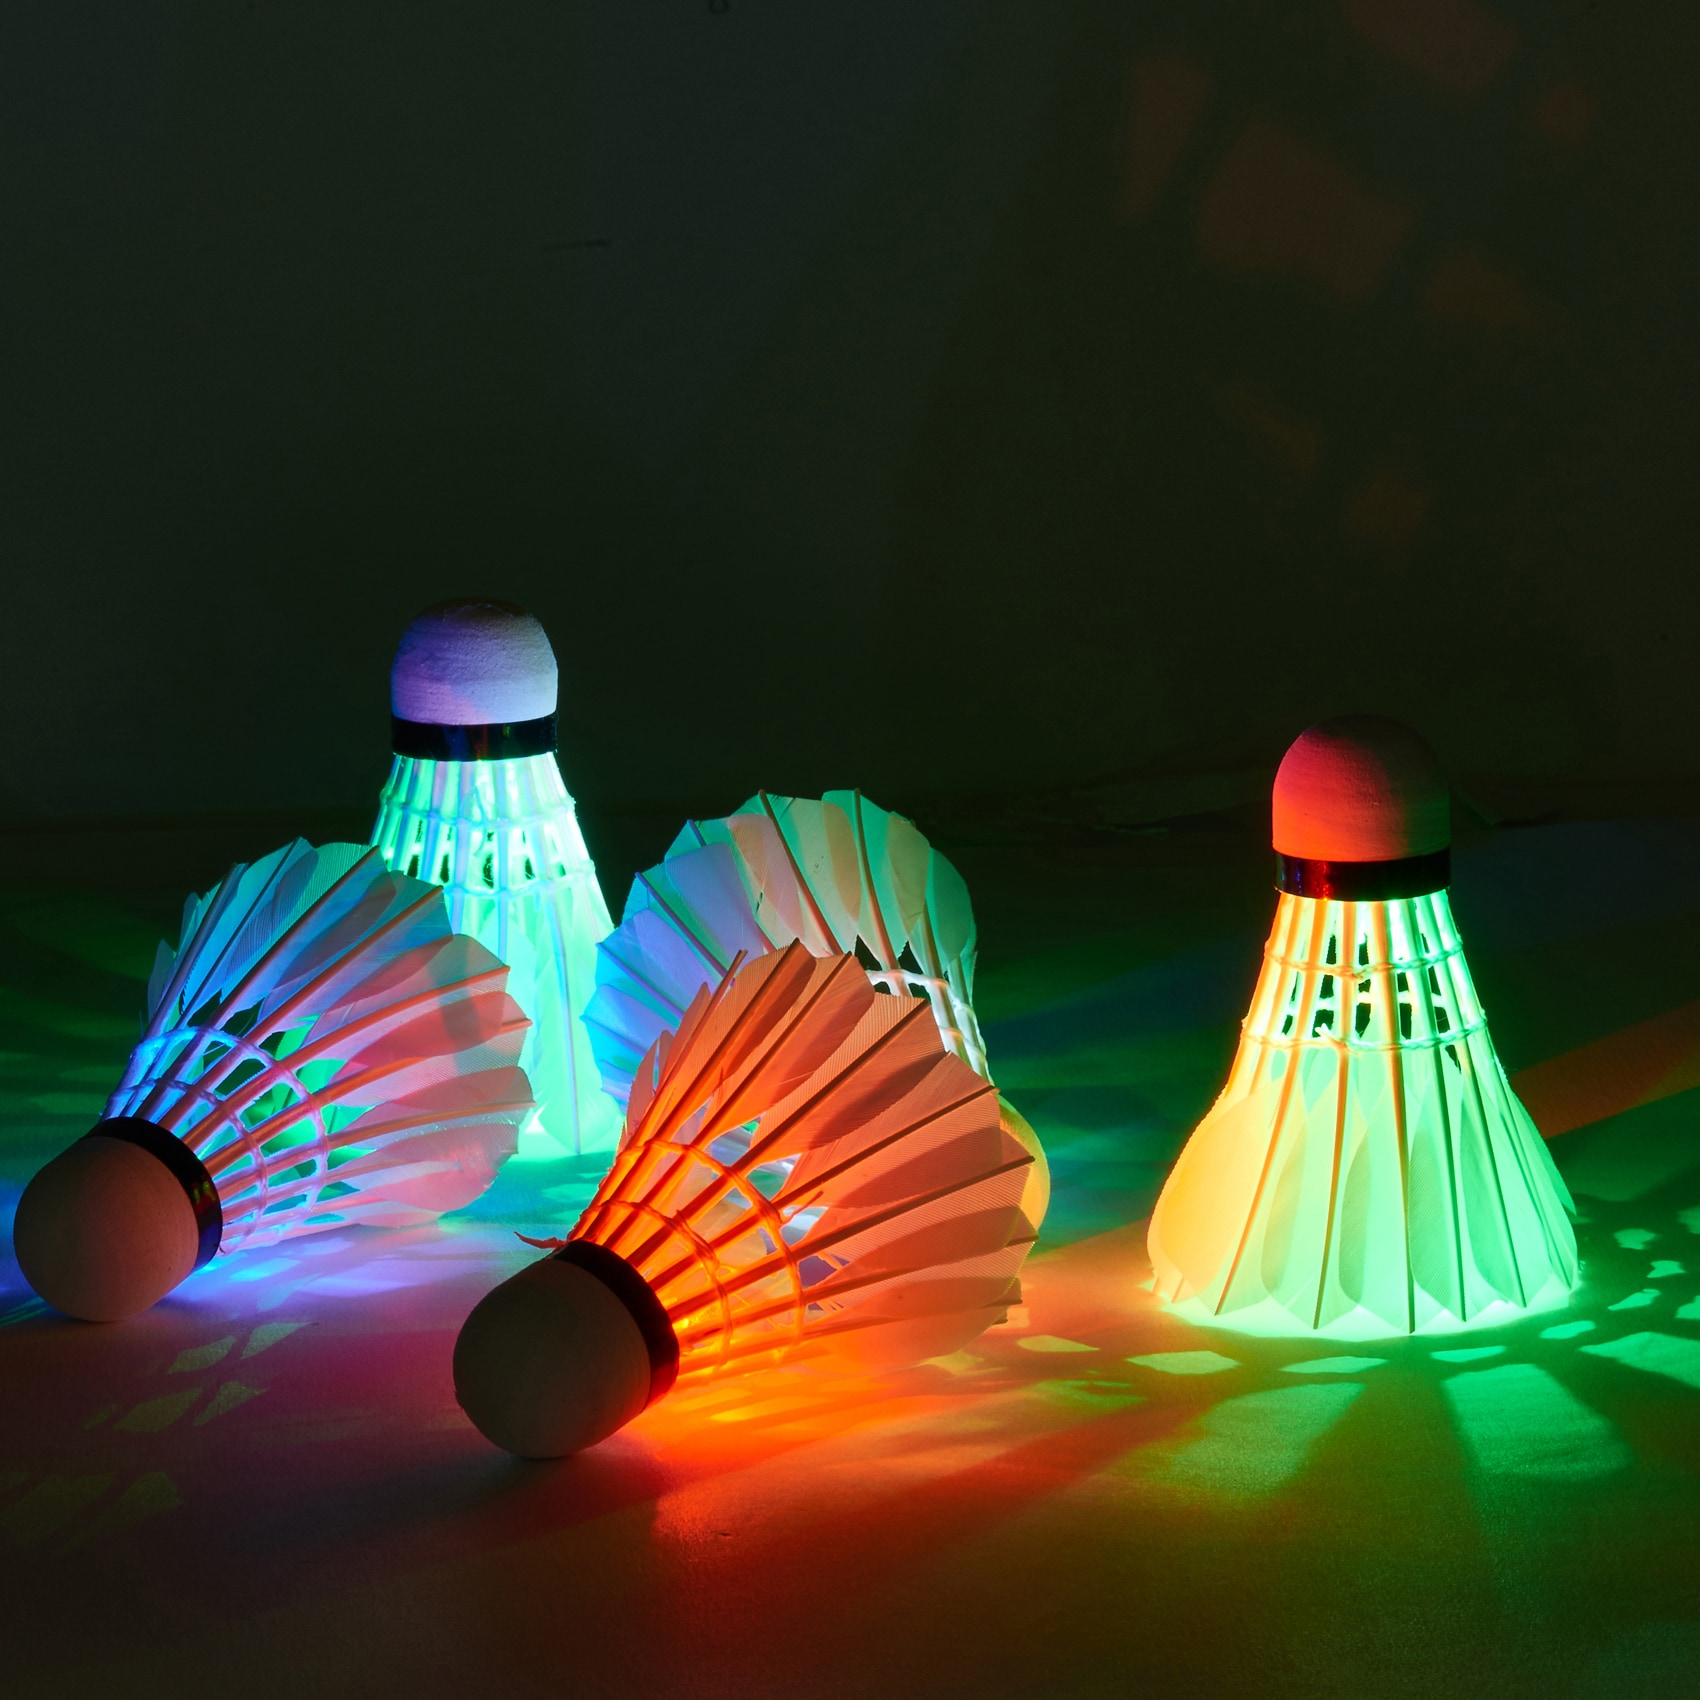 Glow In The Dark Product Photography